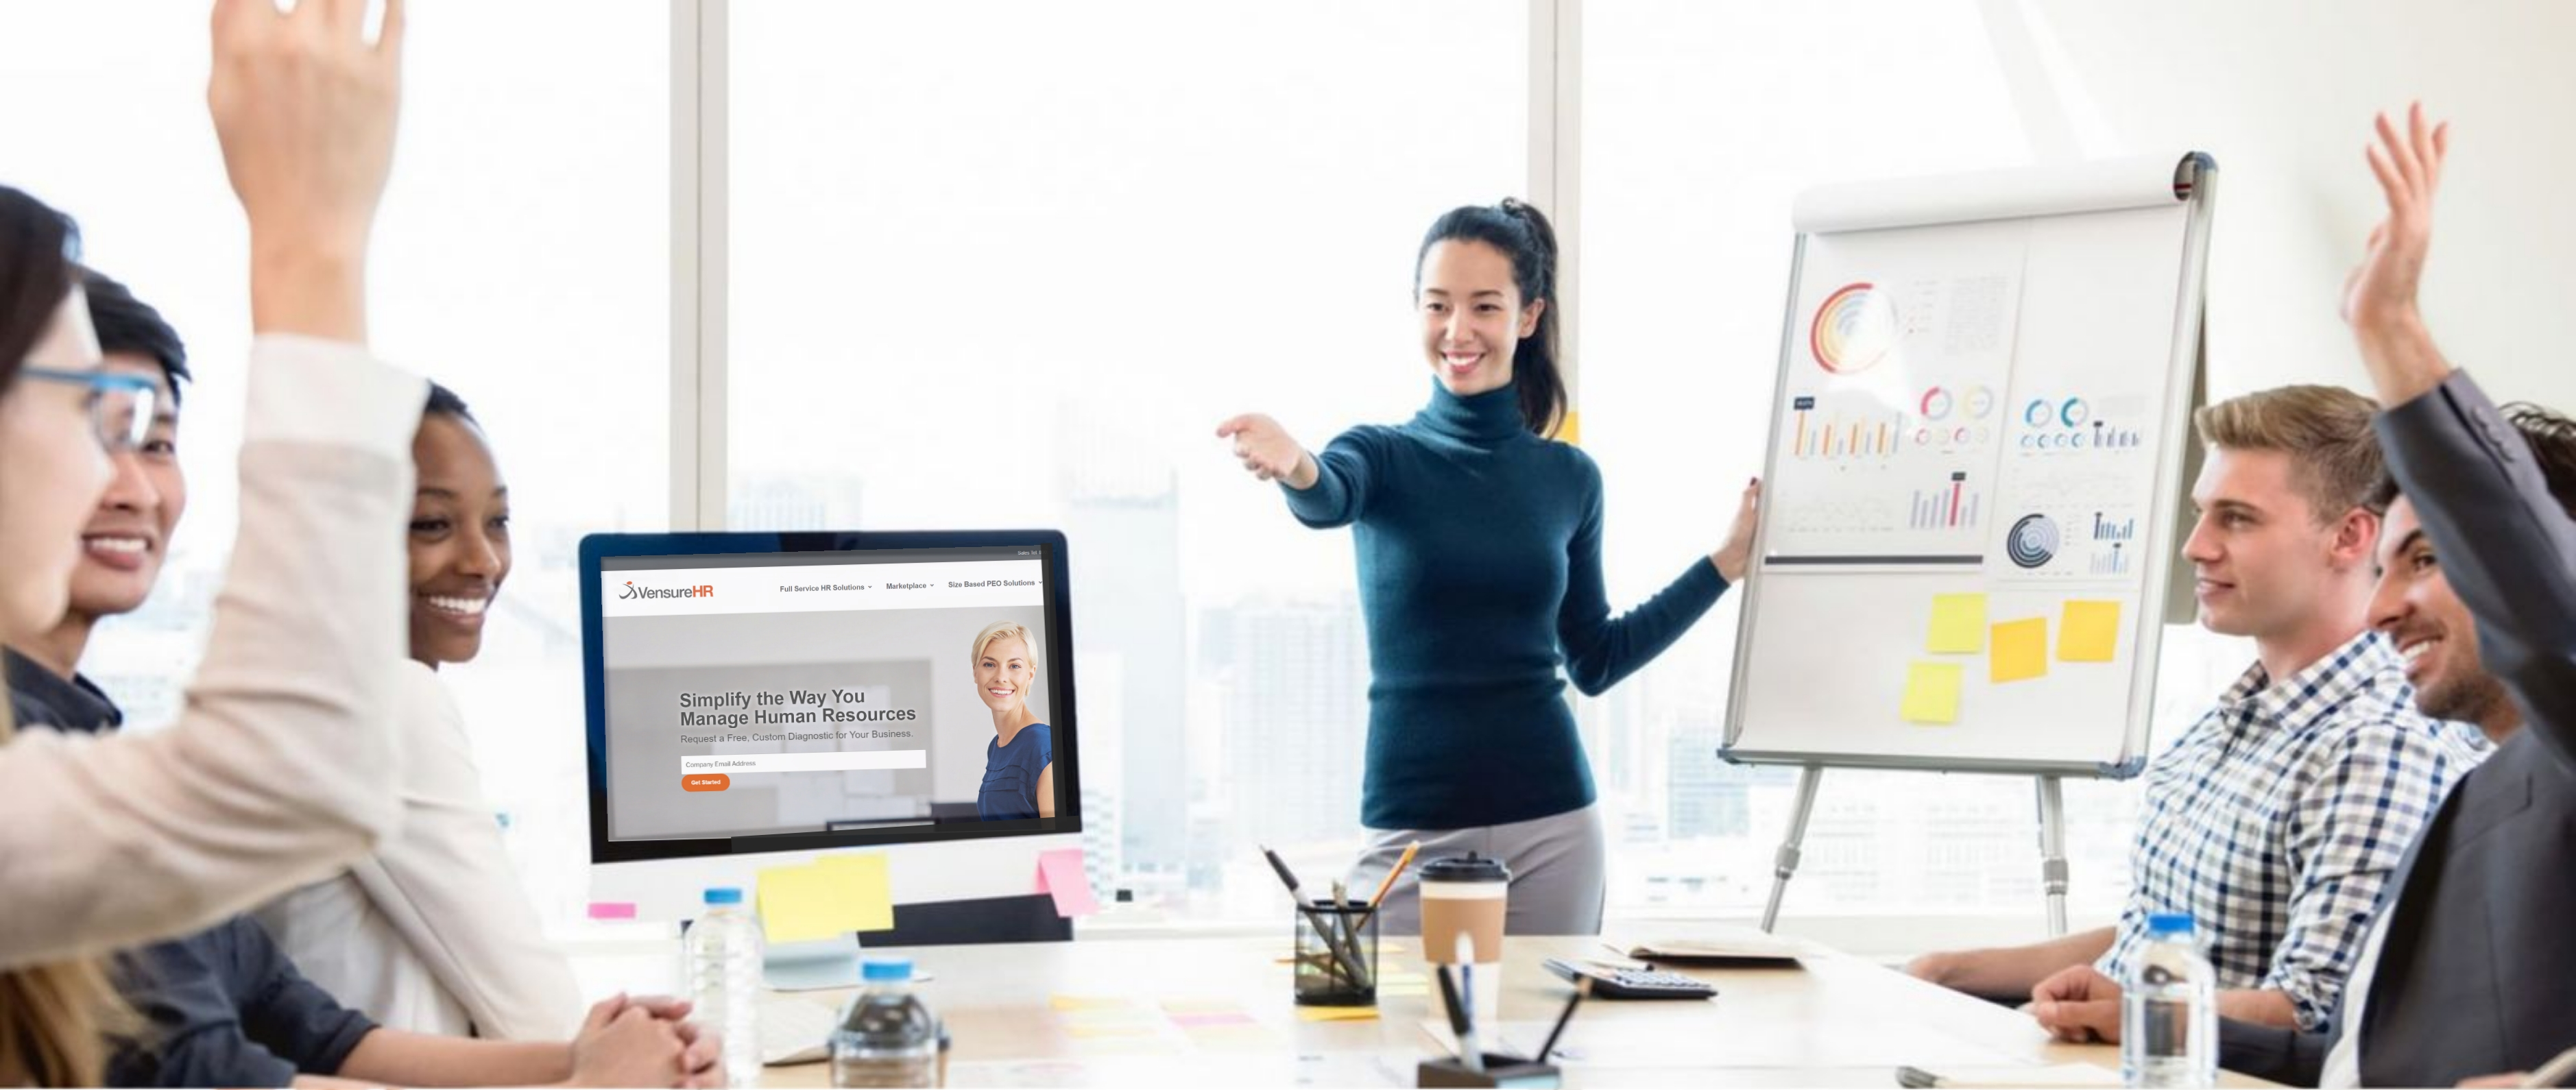 A young businesswoman develops new skills in career by presenting to her team once per week